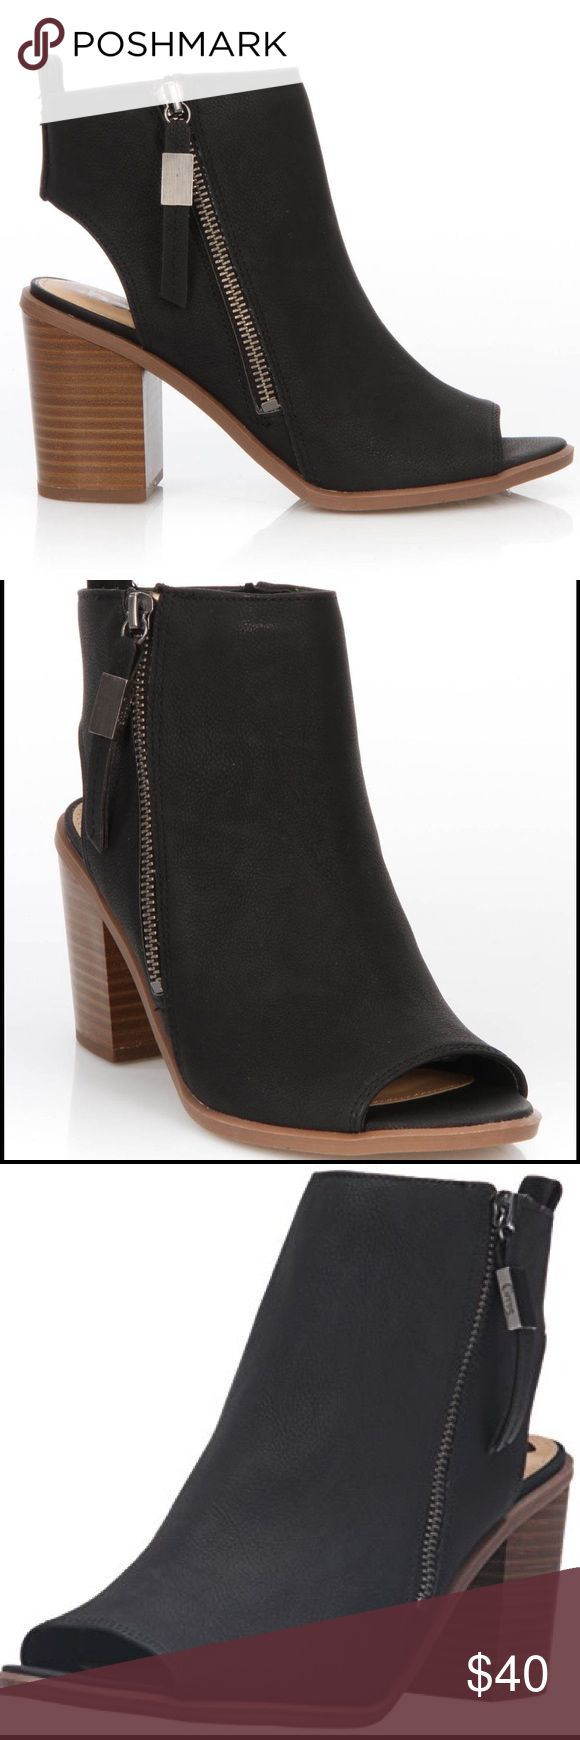 Sam Edelman Black Zip Up Booties - Kammi Like new! Worn once. Circus by Sam Edelman Shoes Ankle Boots & Booties